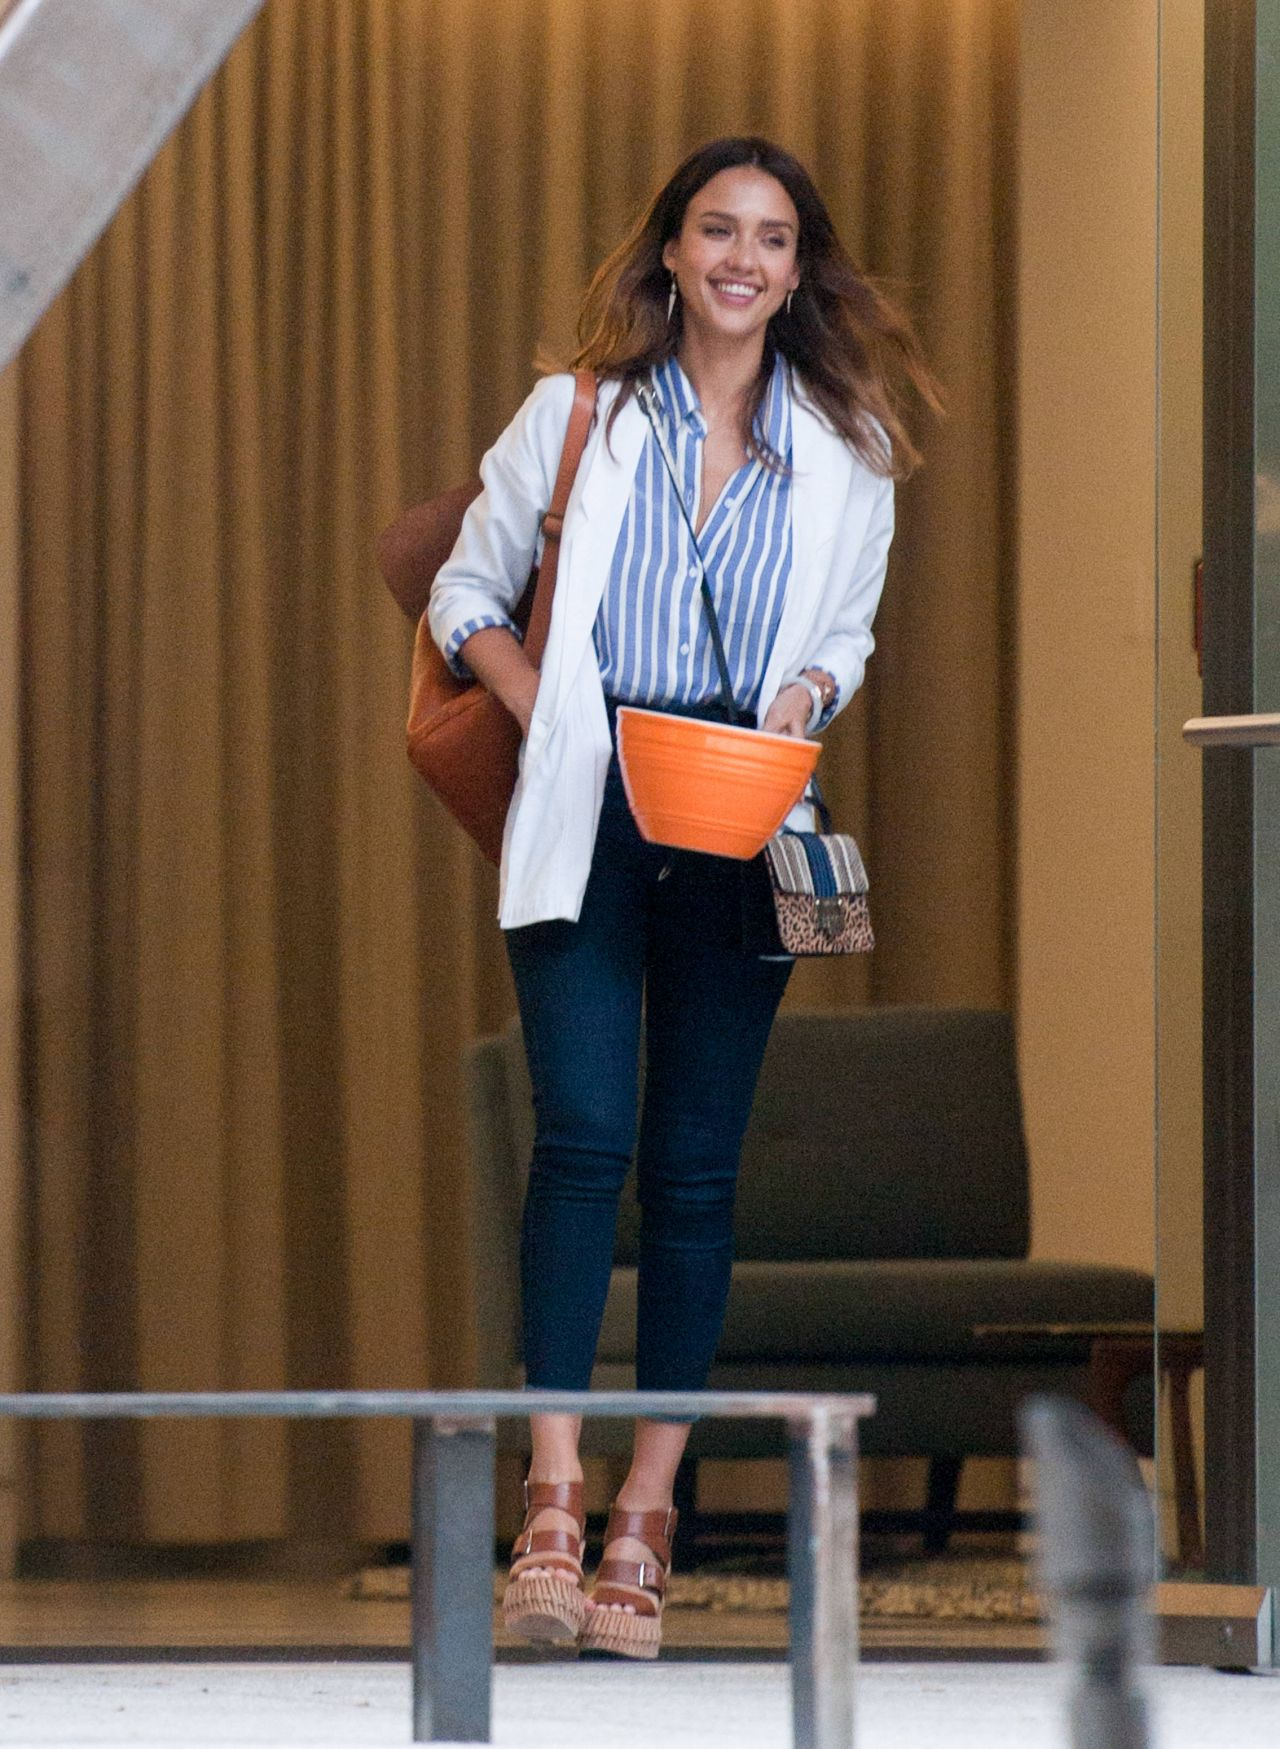 http://celebmafia.com/wp-content/uploads/2016/06/jessica-alba-is-stylish-out-in-los-angeles-6-2-2016-2.jpg